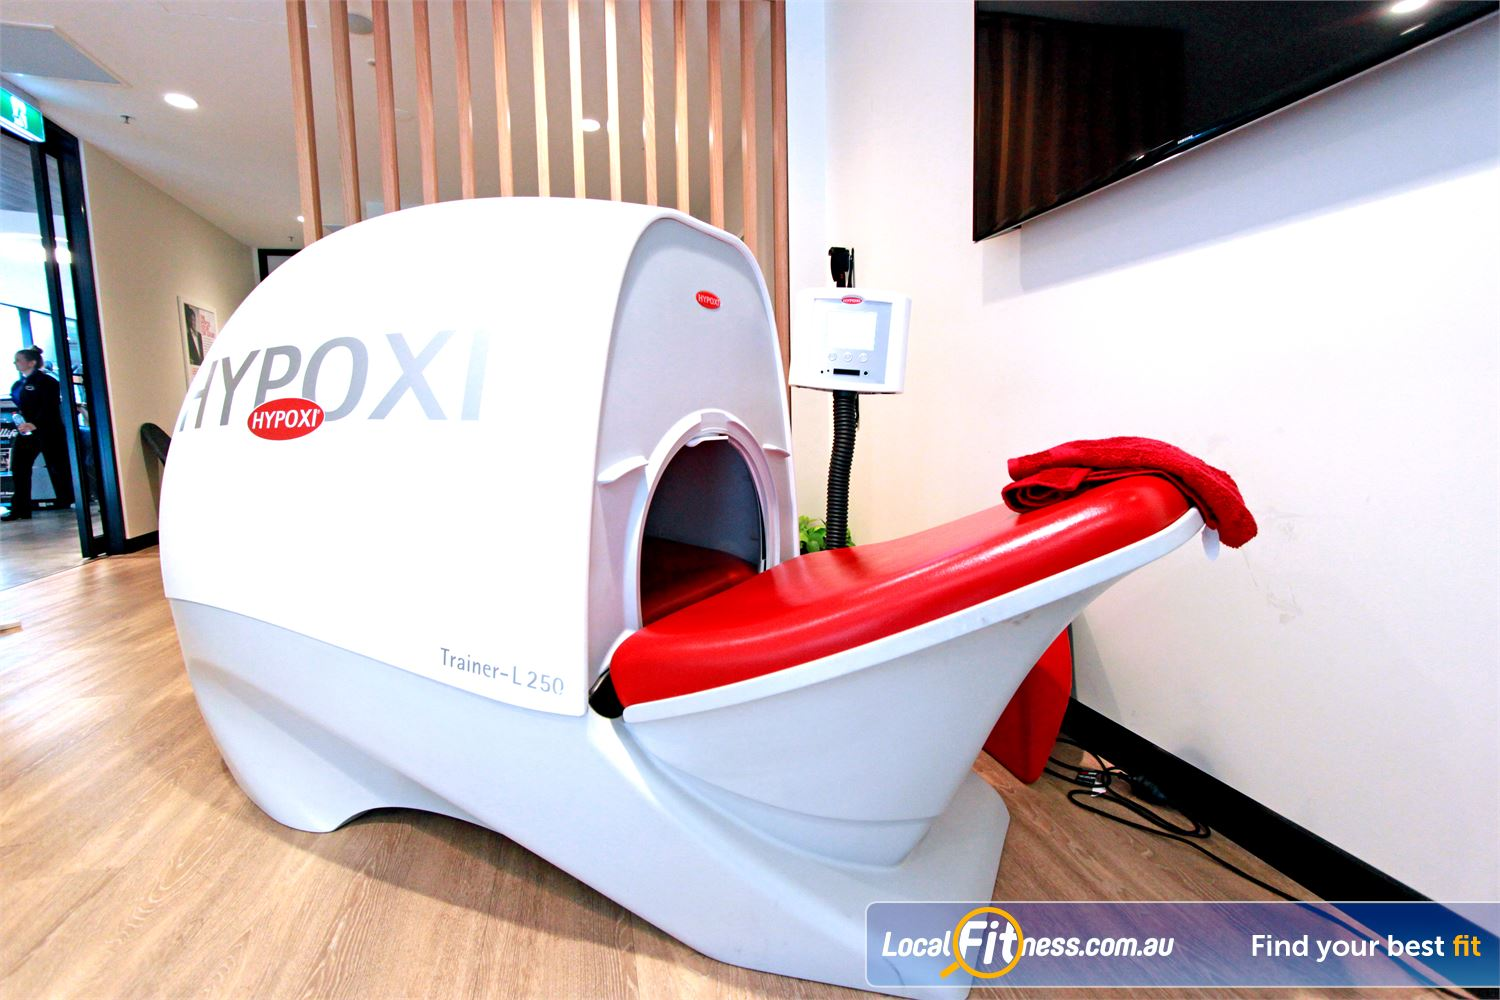 Goodlife Health Clubs Near North Melbourne The high tech Hypoxi machines to burn those stubborn areas.